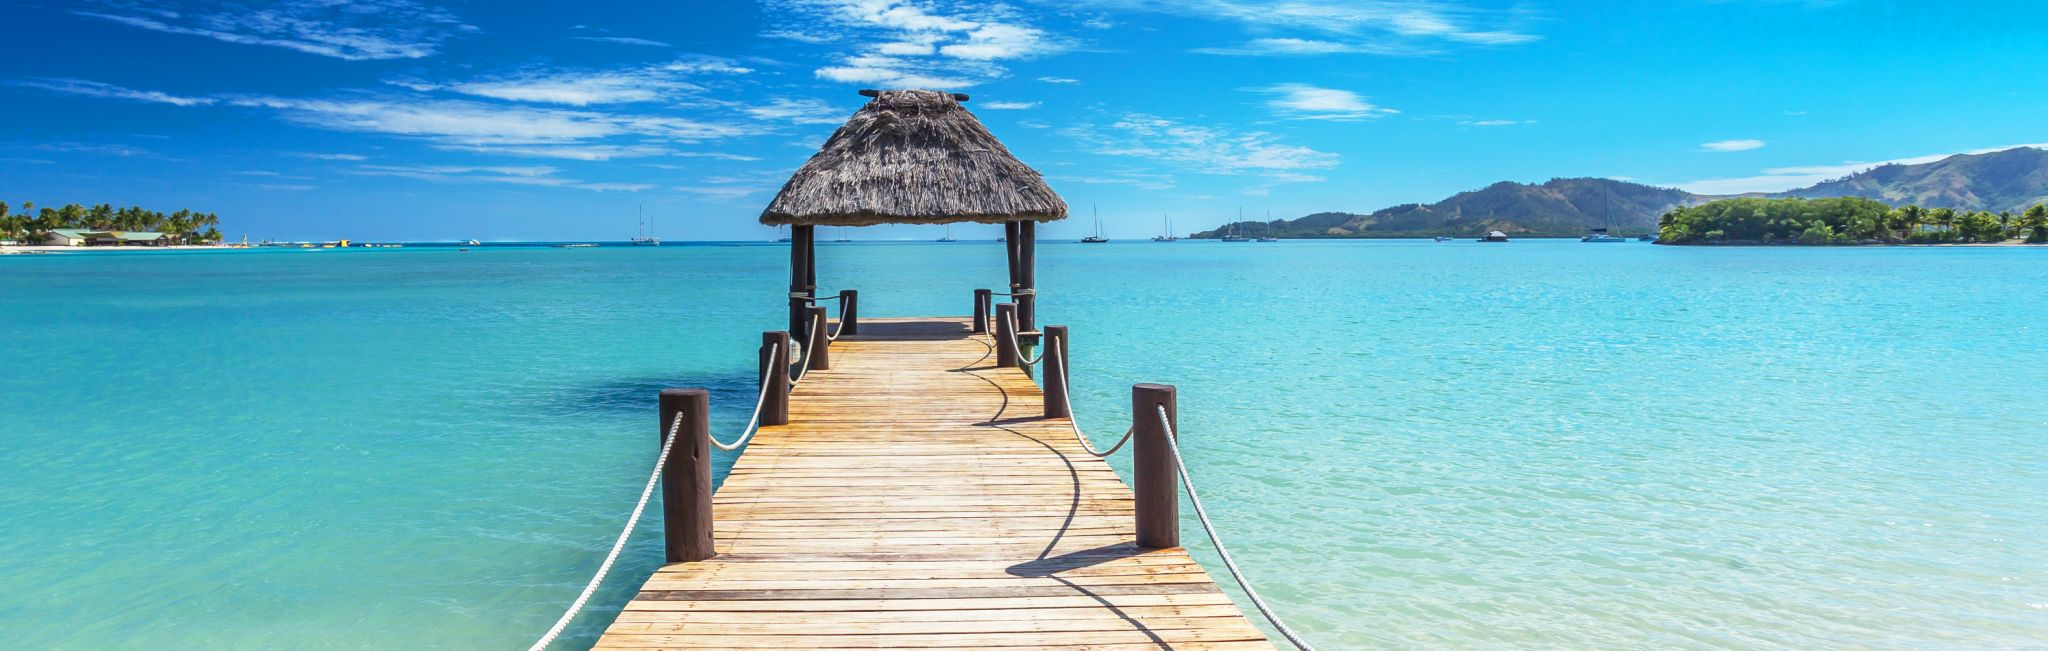 Luxury Fiji Honeymoon Romantic Travel Tours Fiji Vacation - Fiji vacations